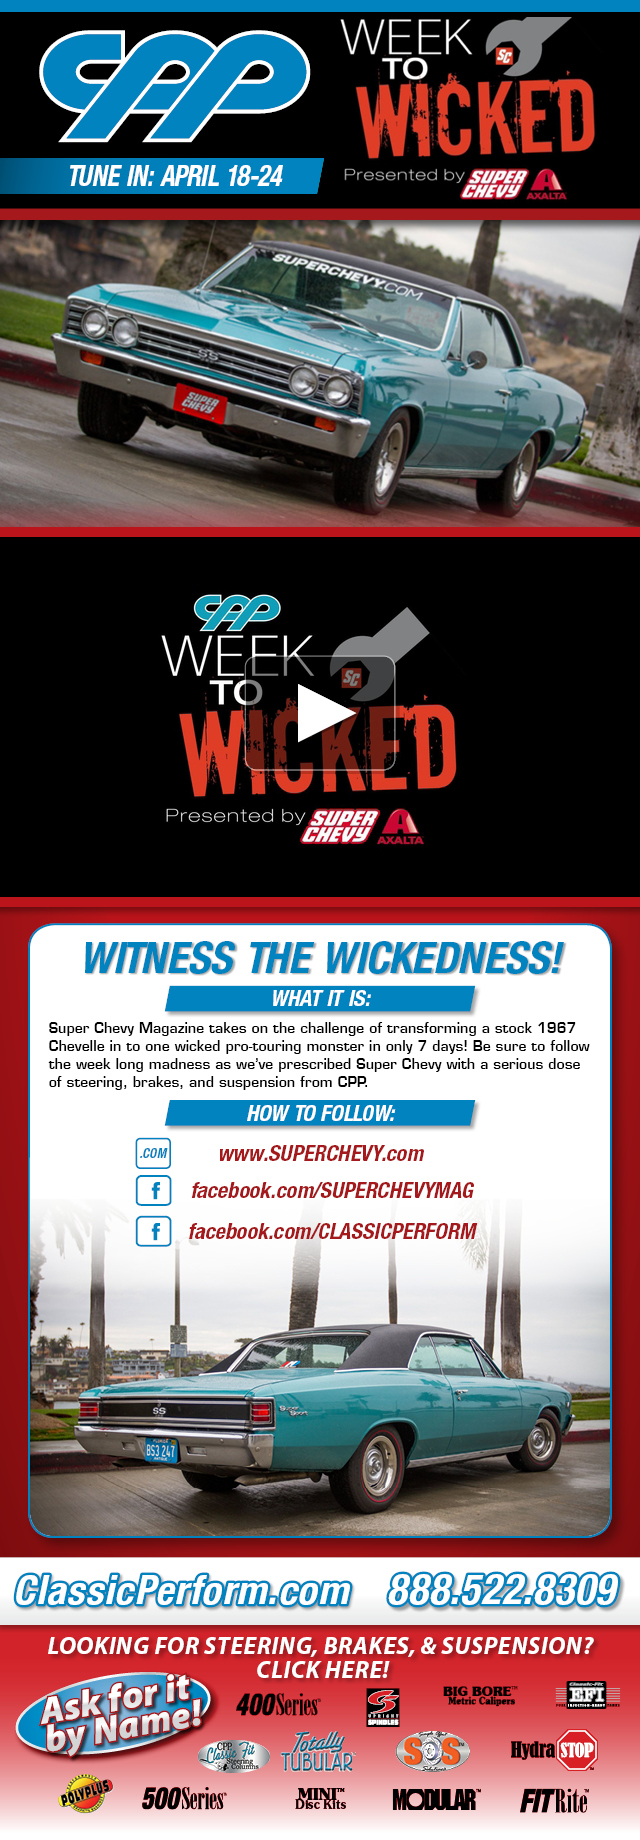 Cpp Week to Wicked